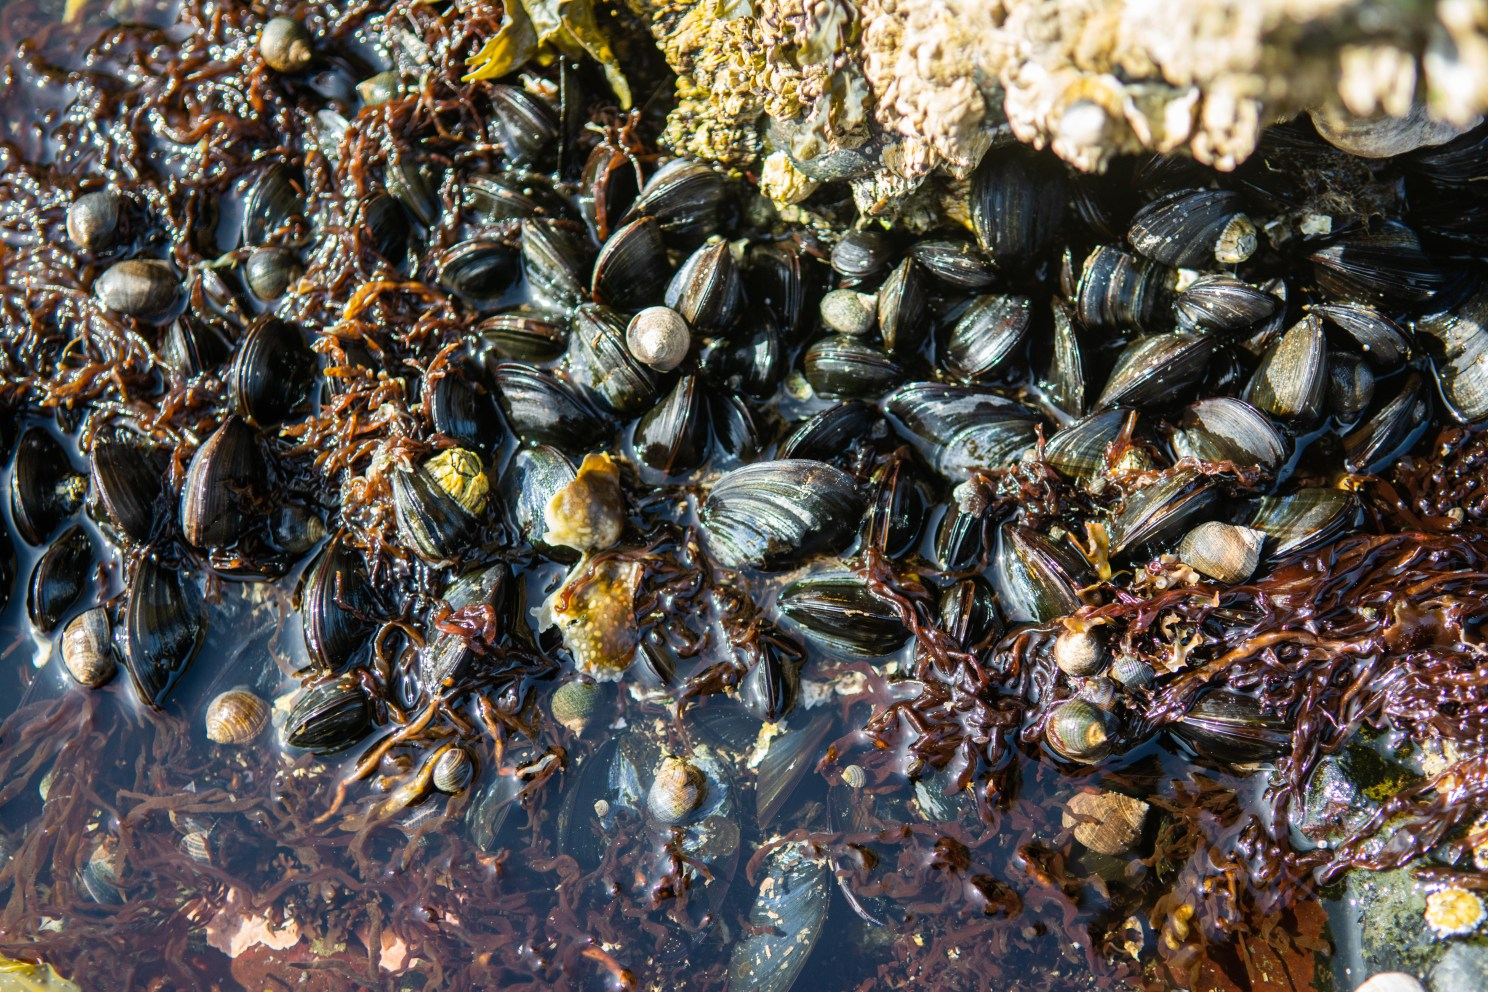 Blue mussels and common periwinkles are crammed into a crack in the rocks in Winter Harbor, Maine. Refugia like this crack may allow these organisms to weather extreme climate events.